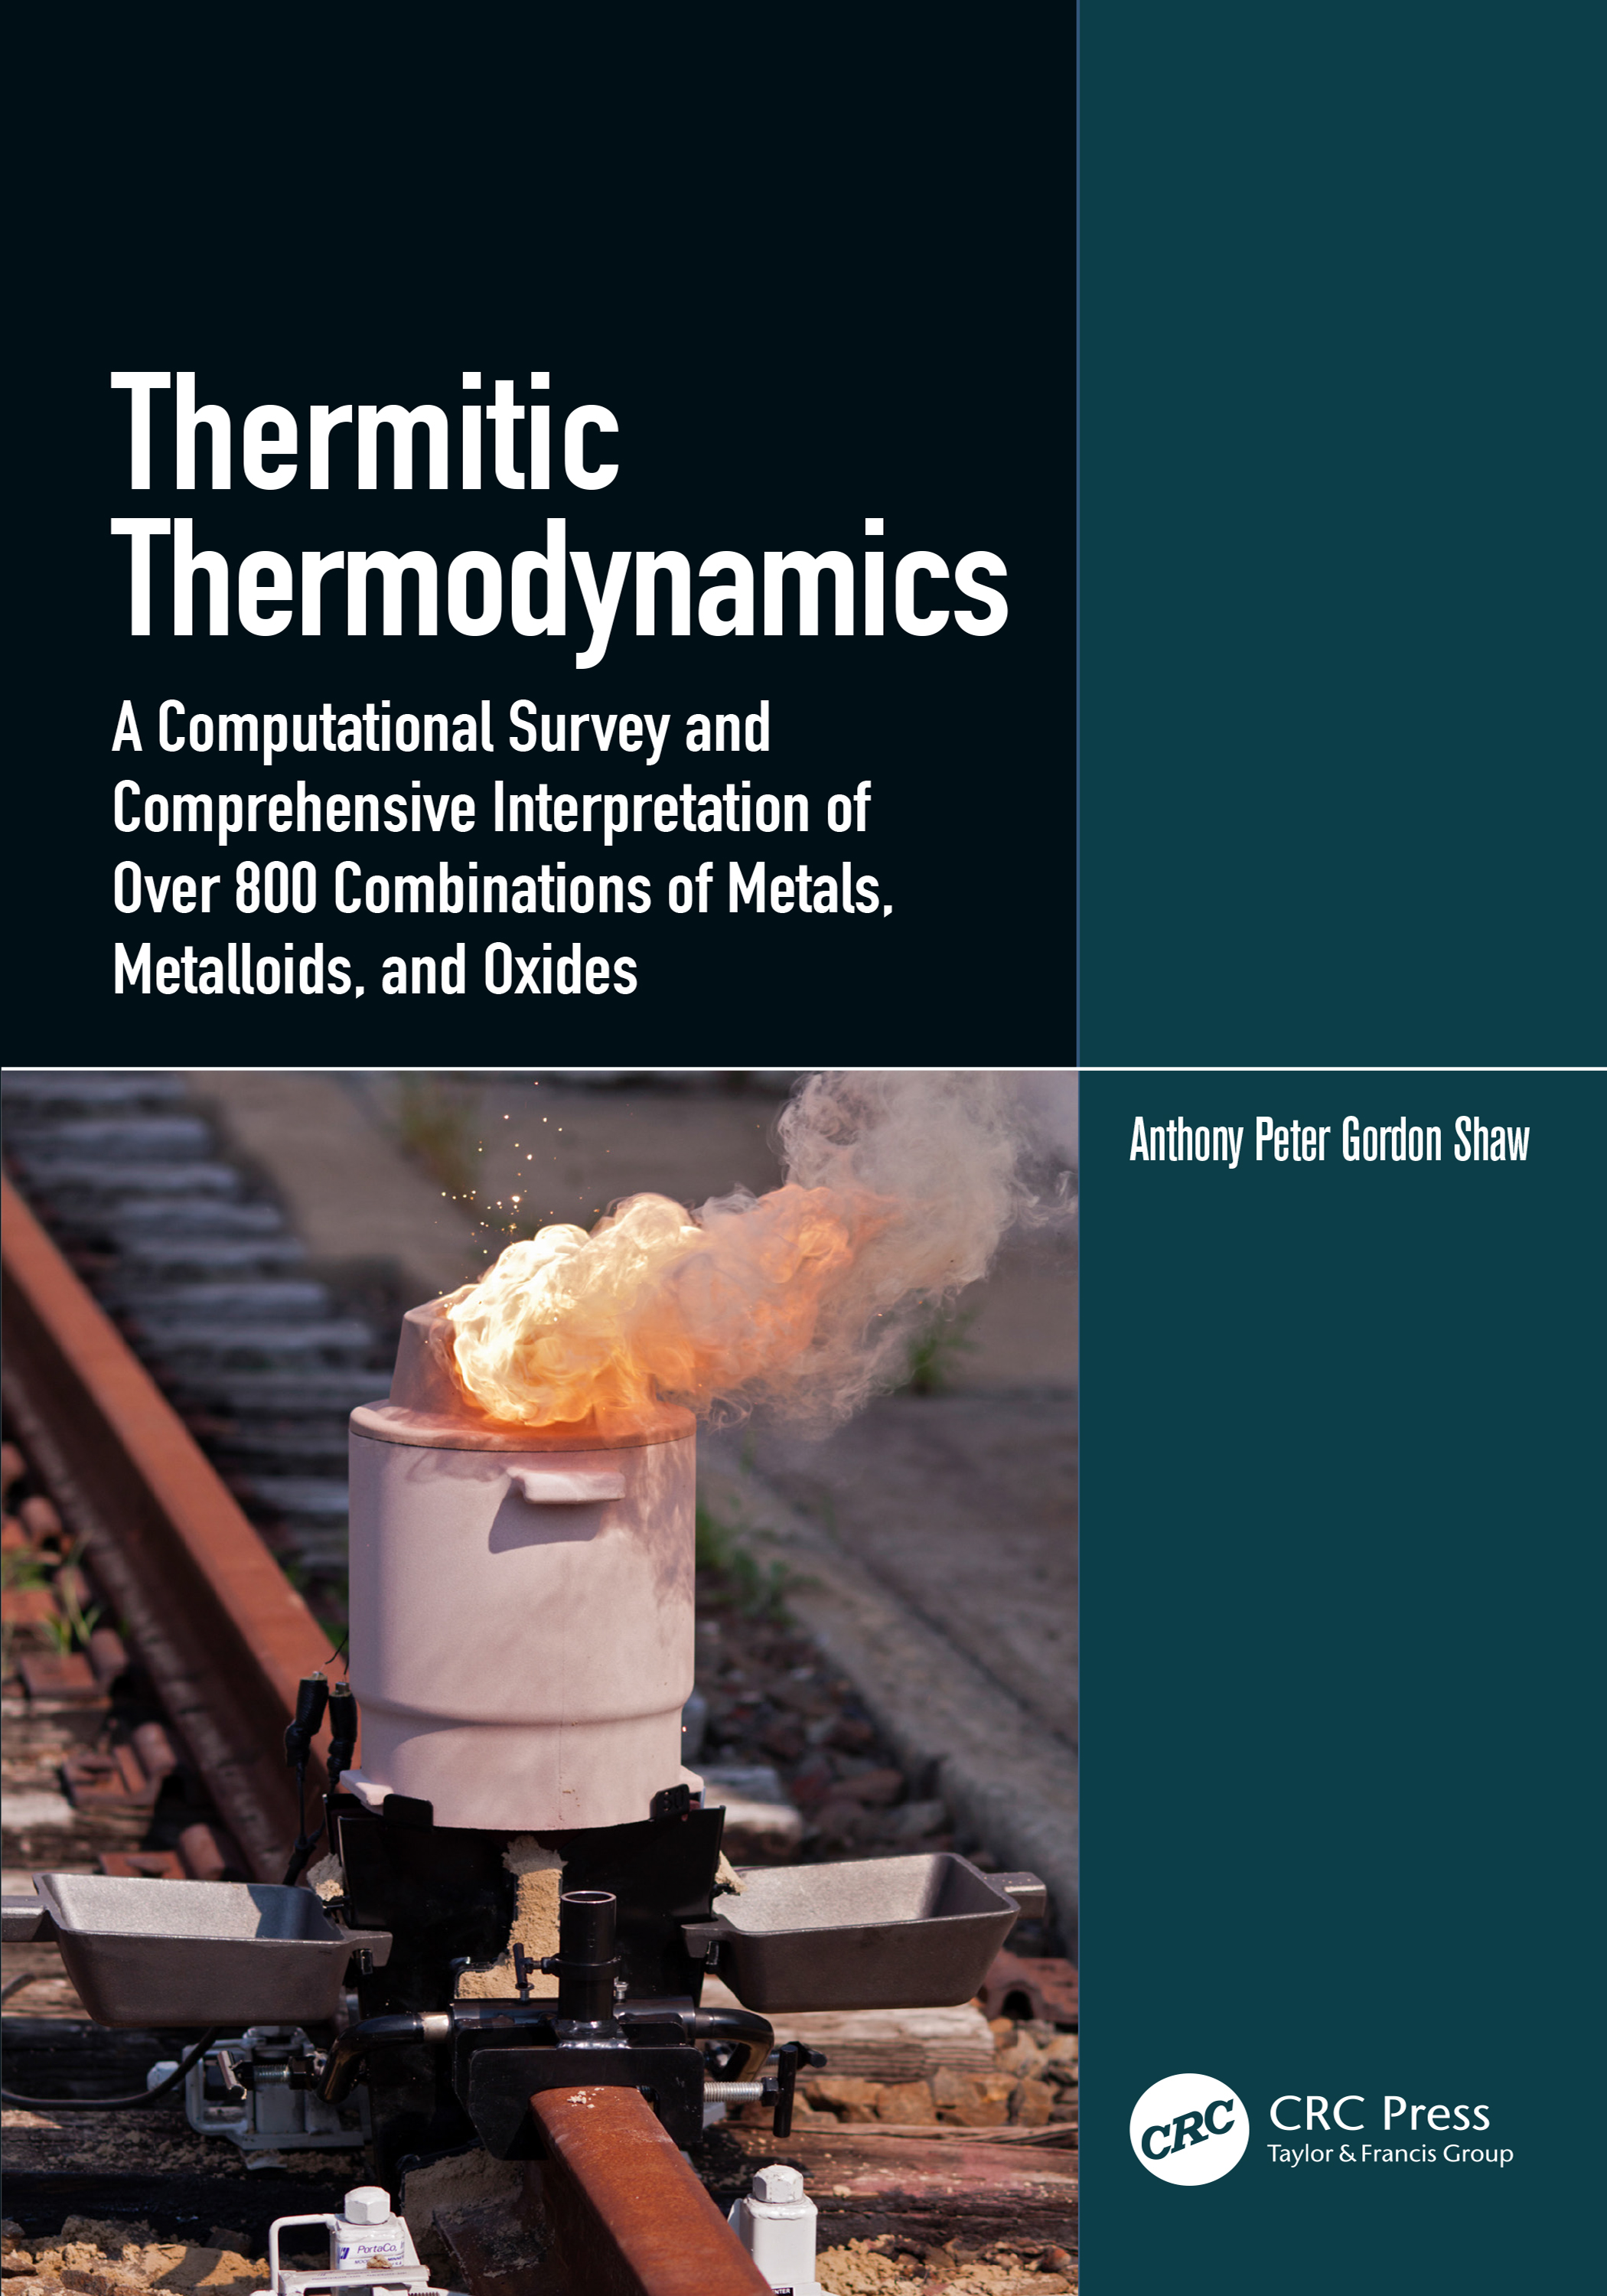 Thermitic Thermodynamics: A Computational Survey and Comprehensive Interpretation of Over 800 Combinations of Metals, Metalloids, and Oxides book cover